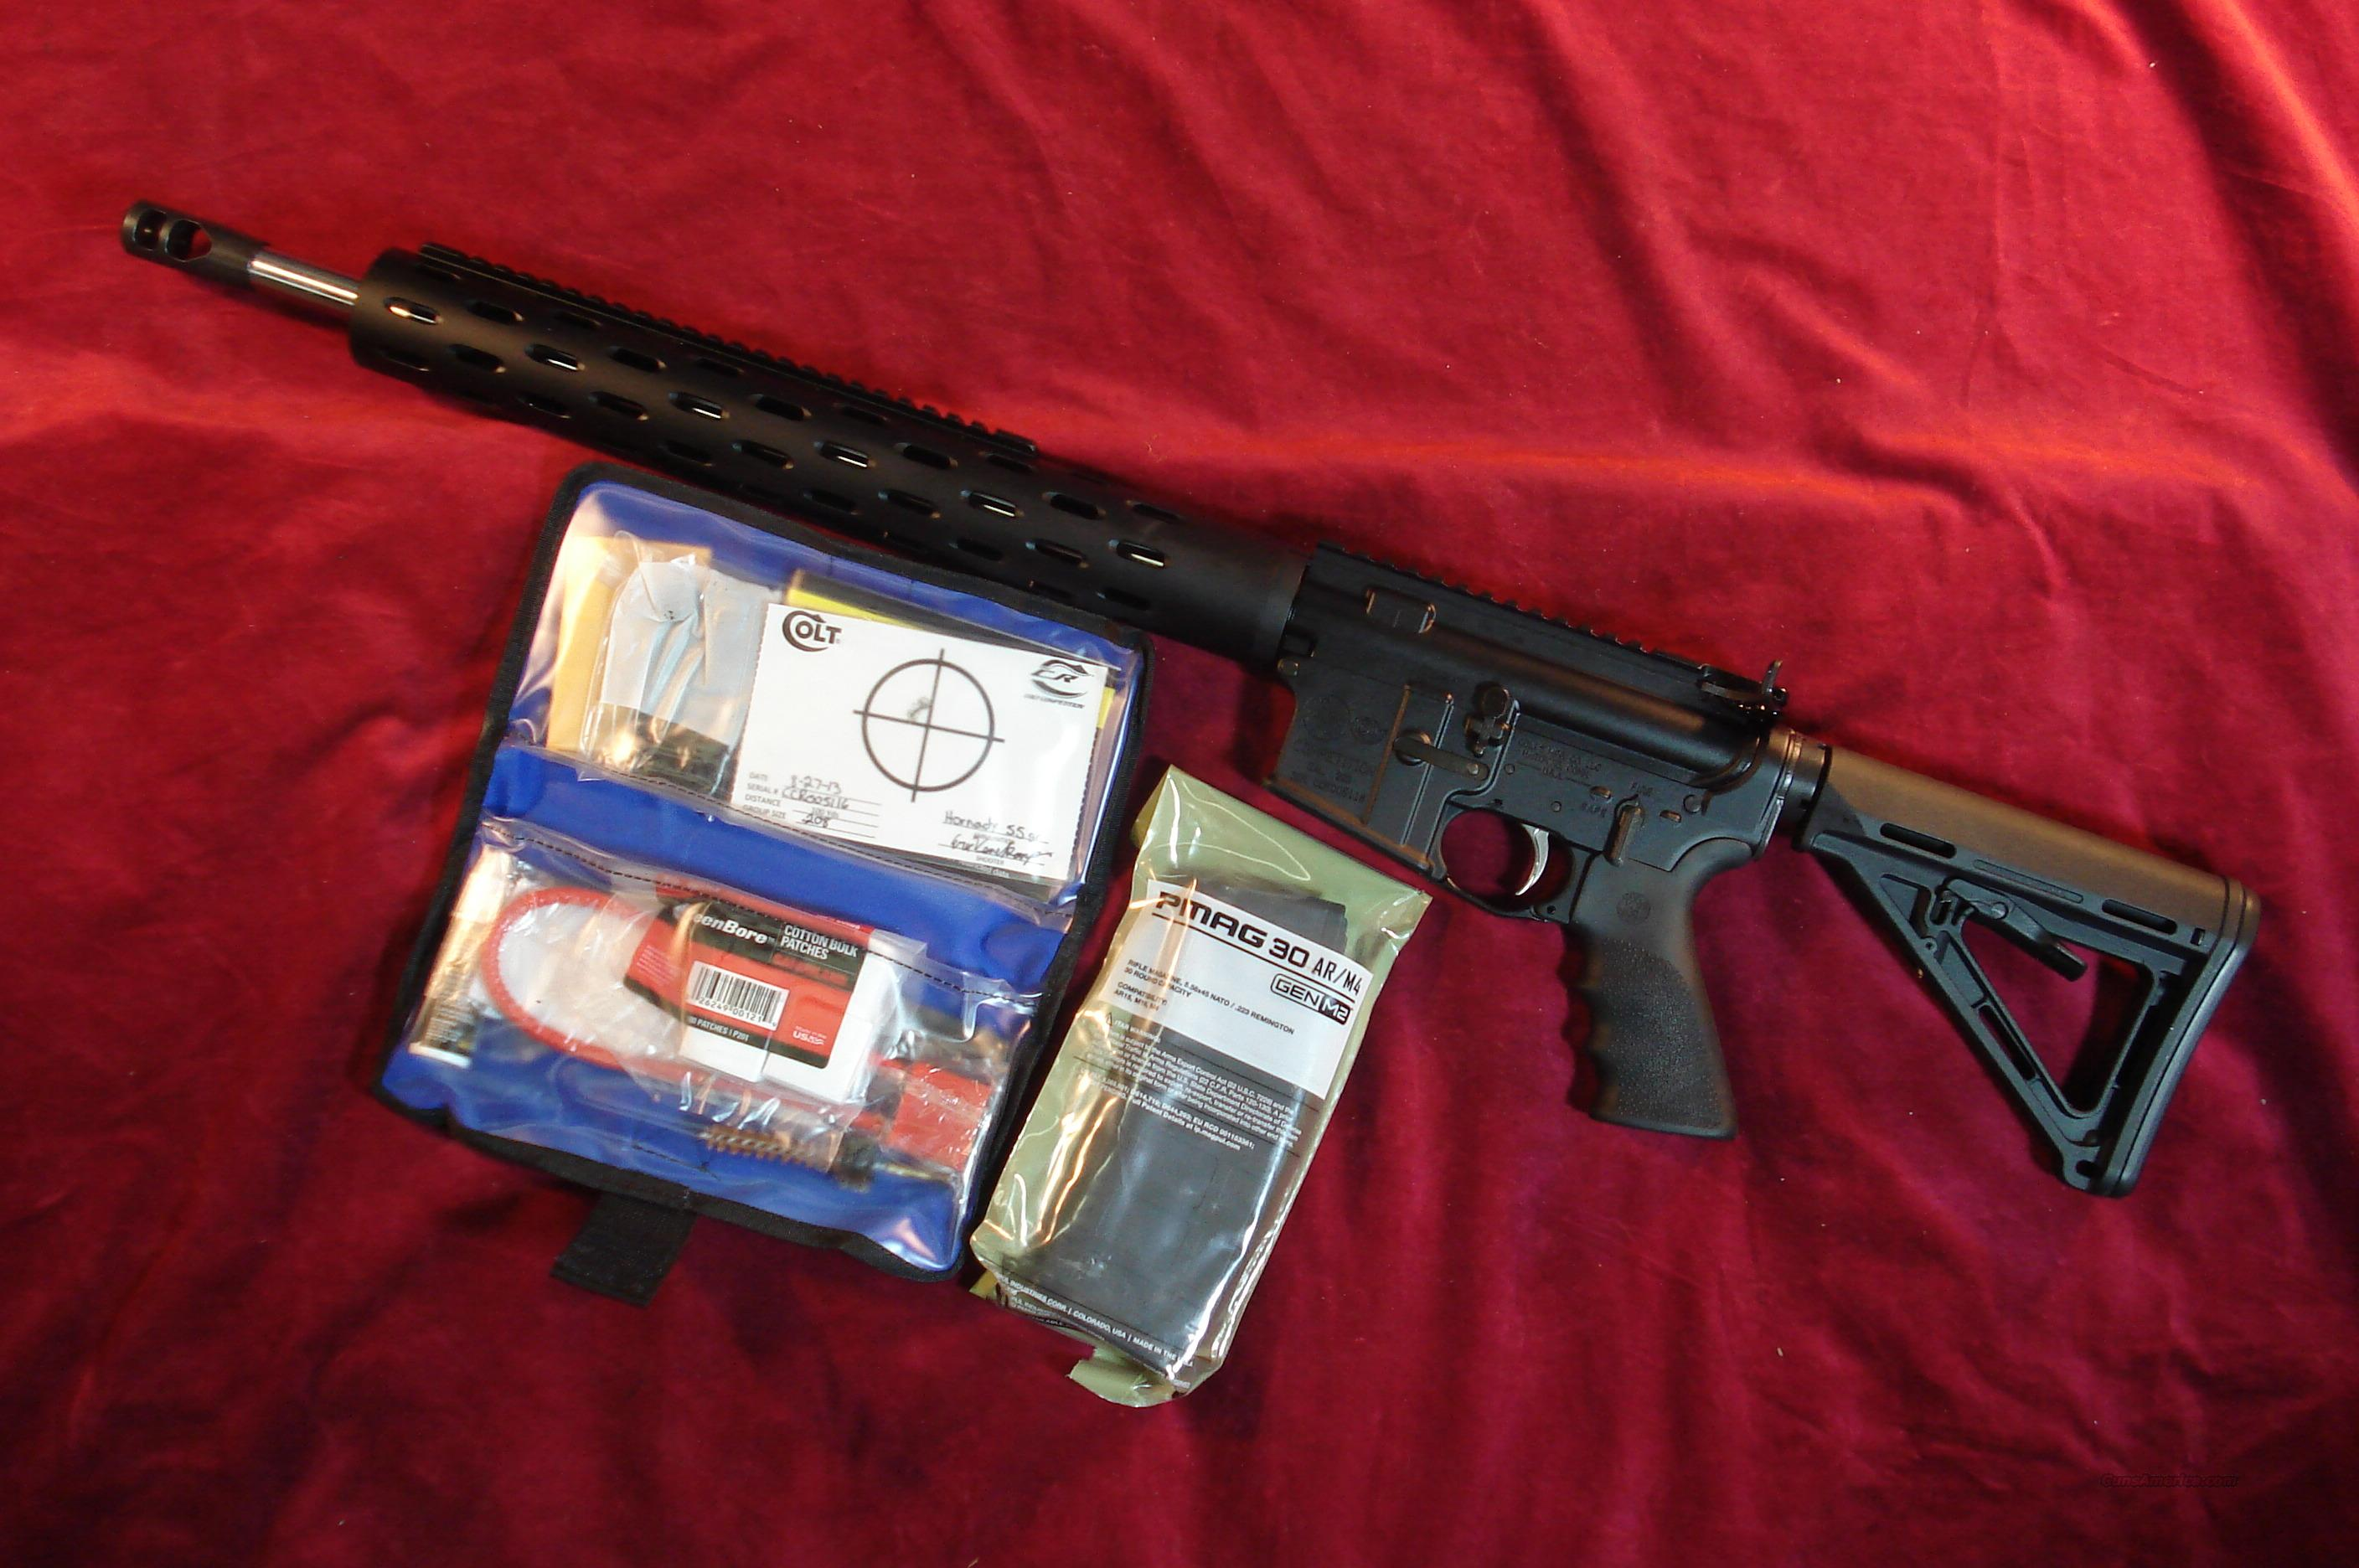 COLT CRE18 EXPERT COMPETITION RIFLE 18' STAINLESS BARREL NEW  Guns > Rifles > Colt Military/Tactical Rifles